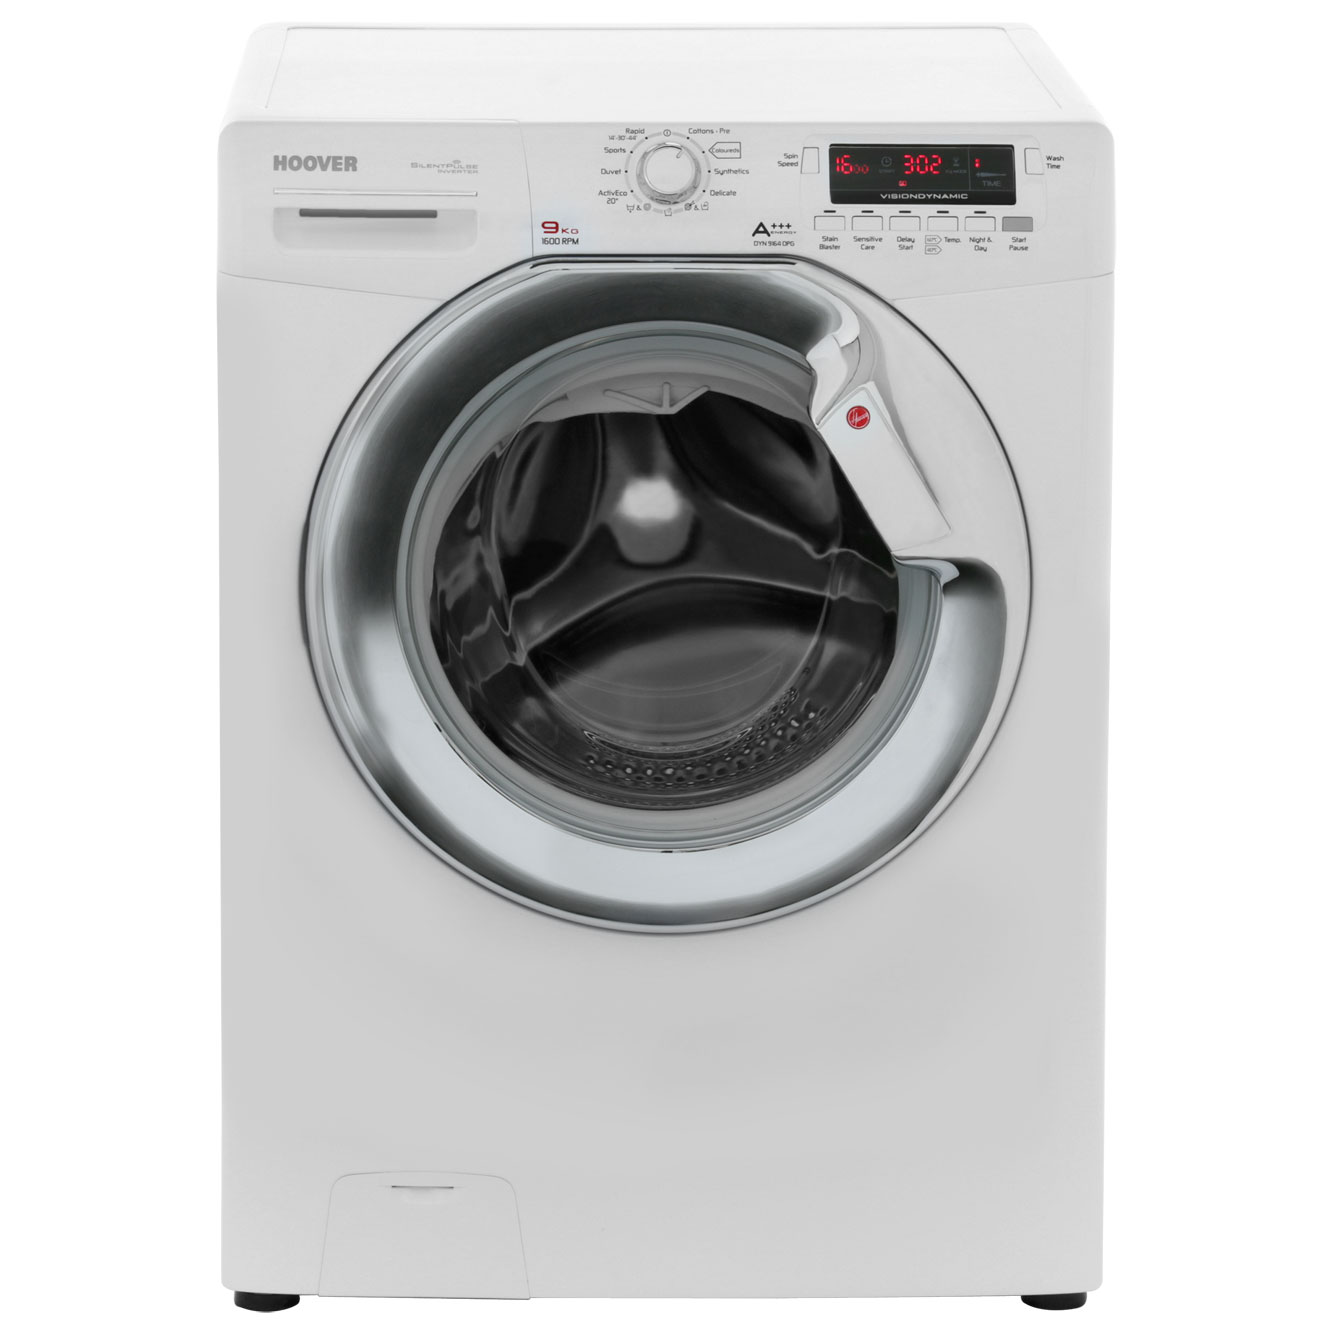 Hoover Dynamic 9 DYN9164DPG 9Kg Washing Machine with 1600 rpm - White / Silver